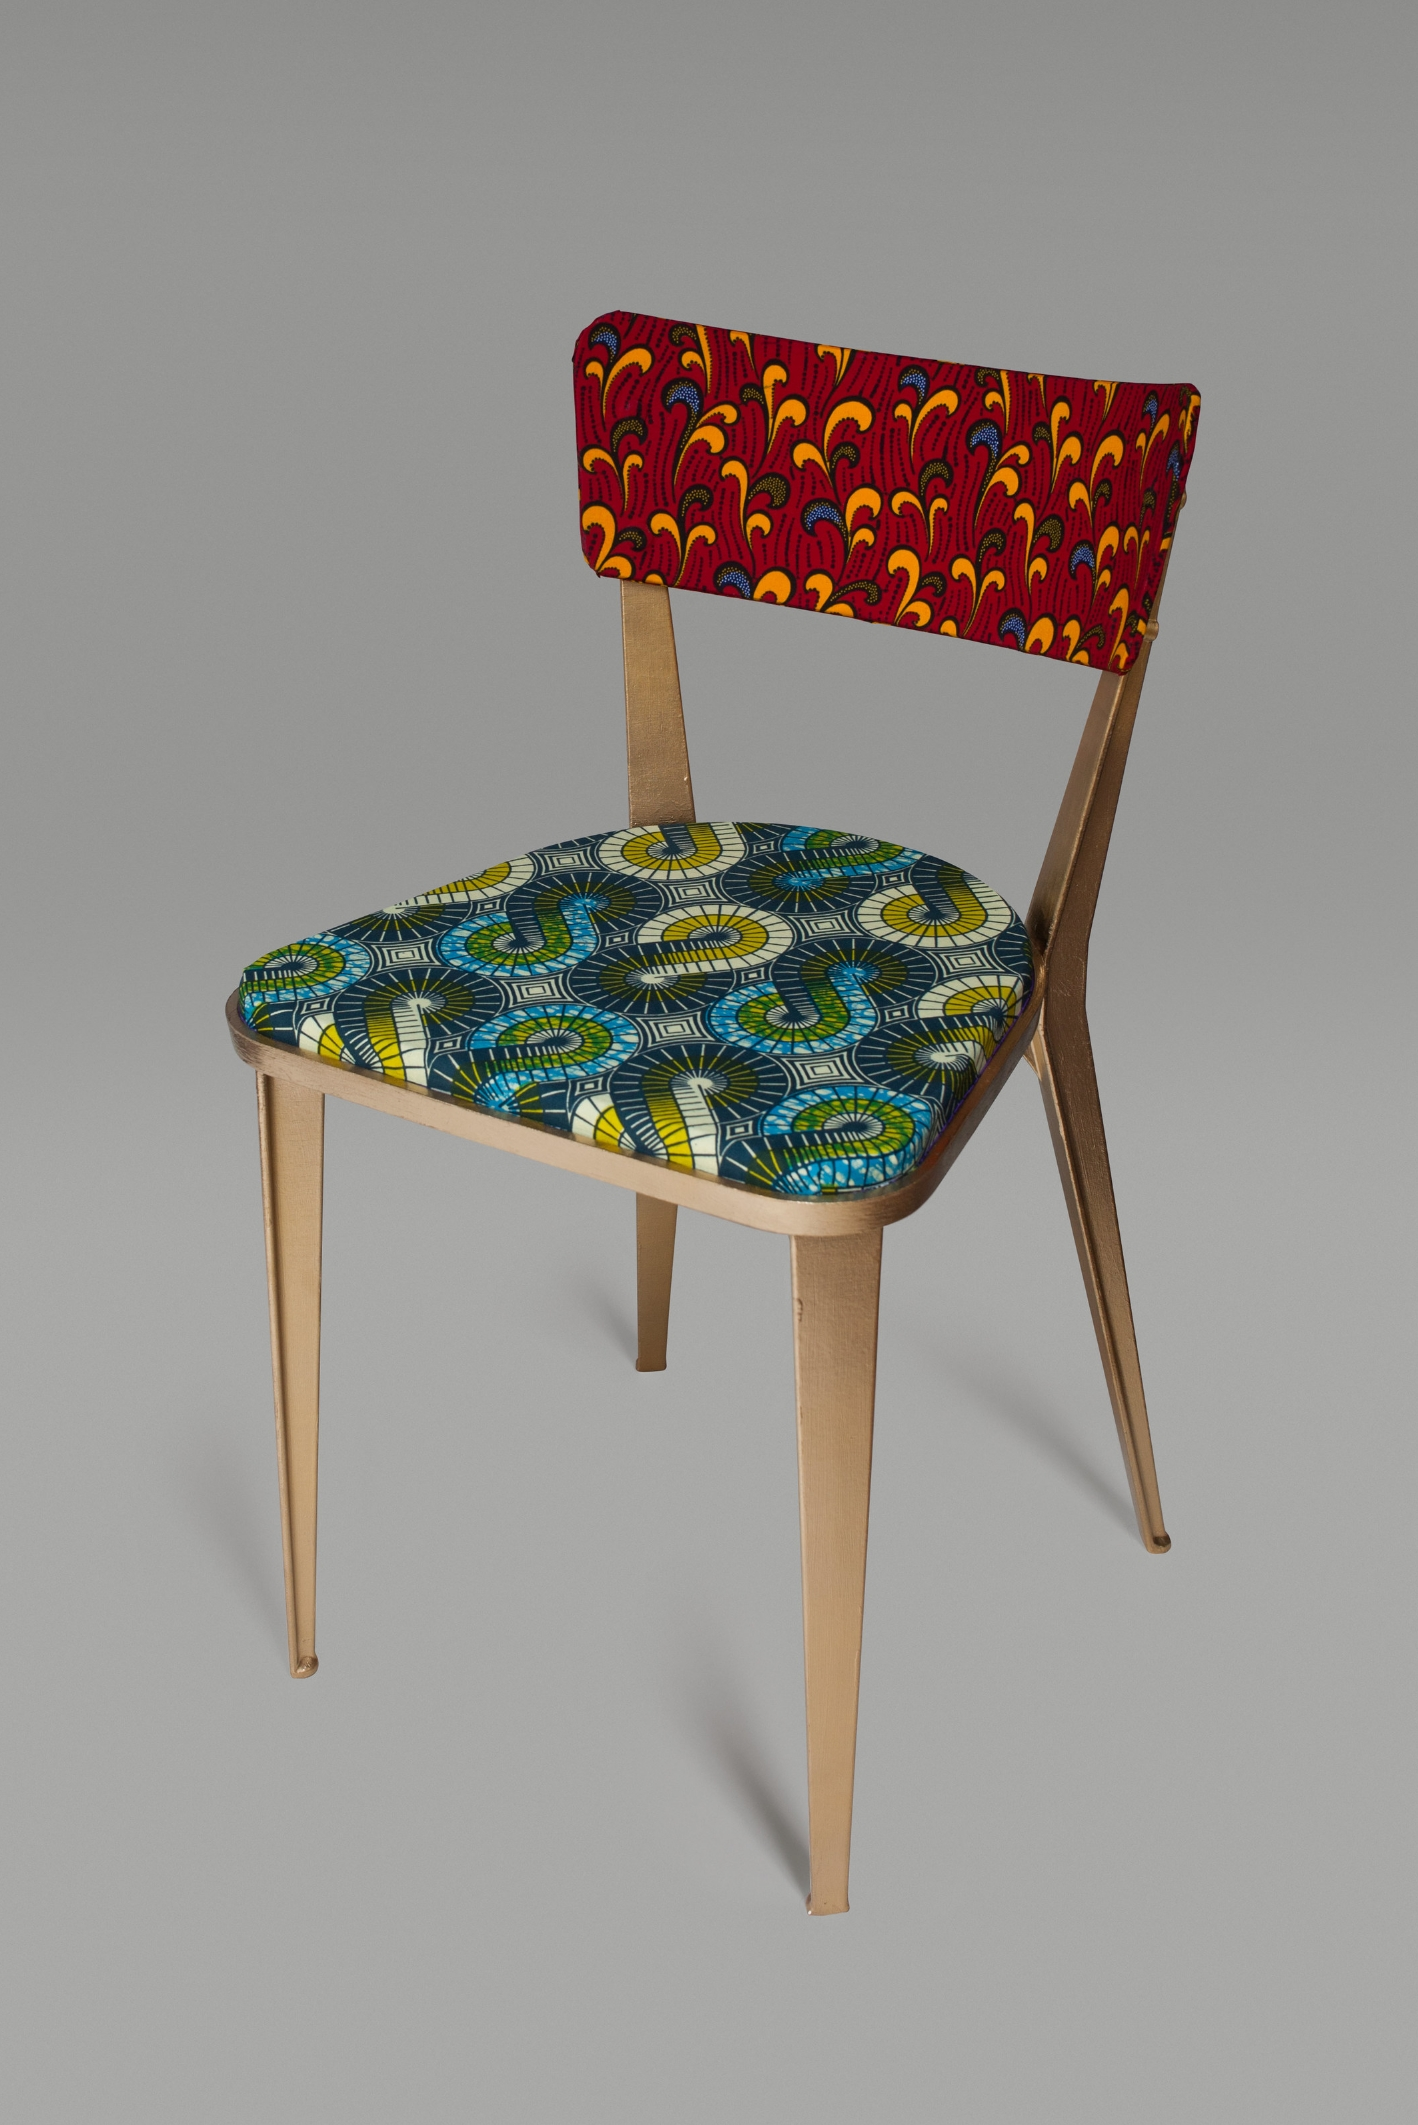 49_Yinka_Shonibare_Chair_Carl_Glover.jpg